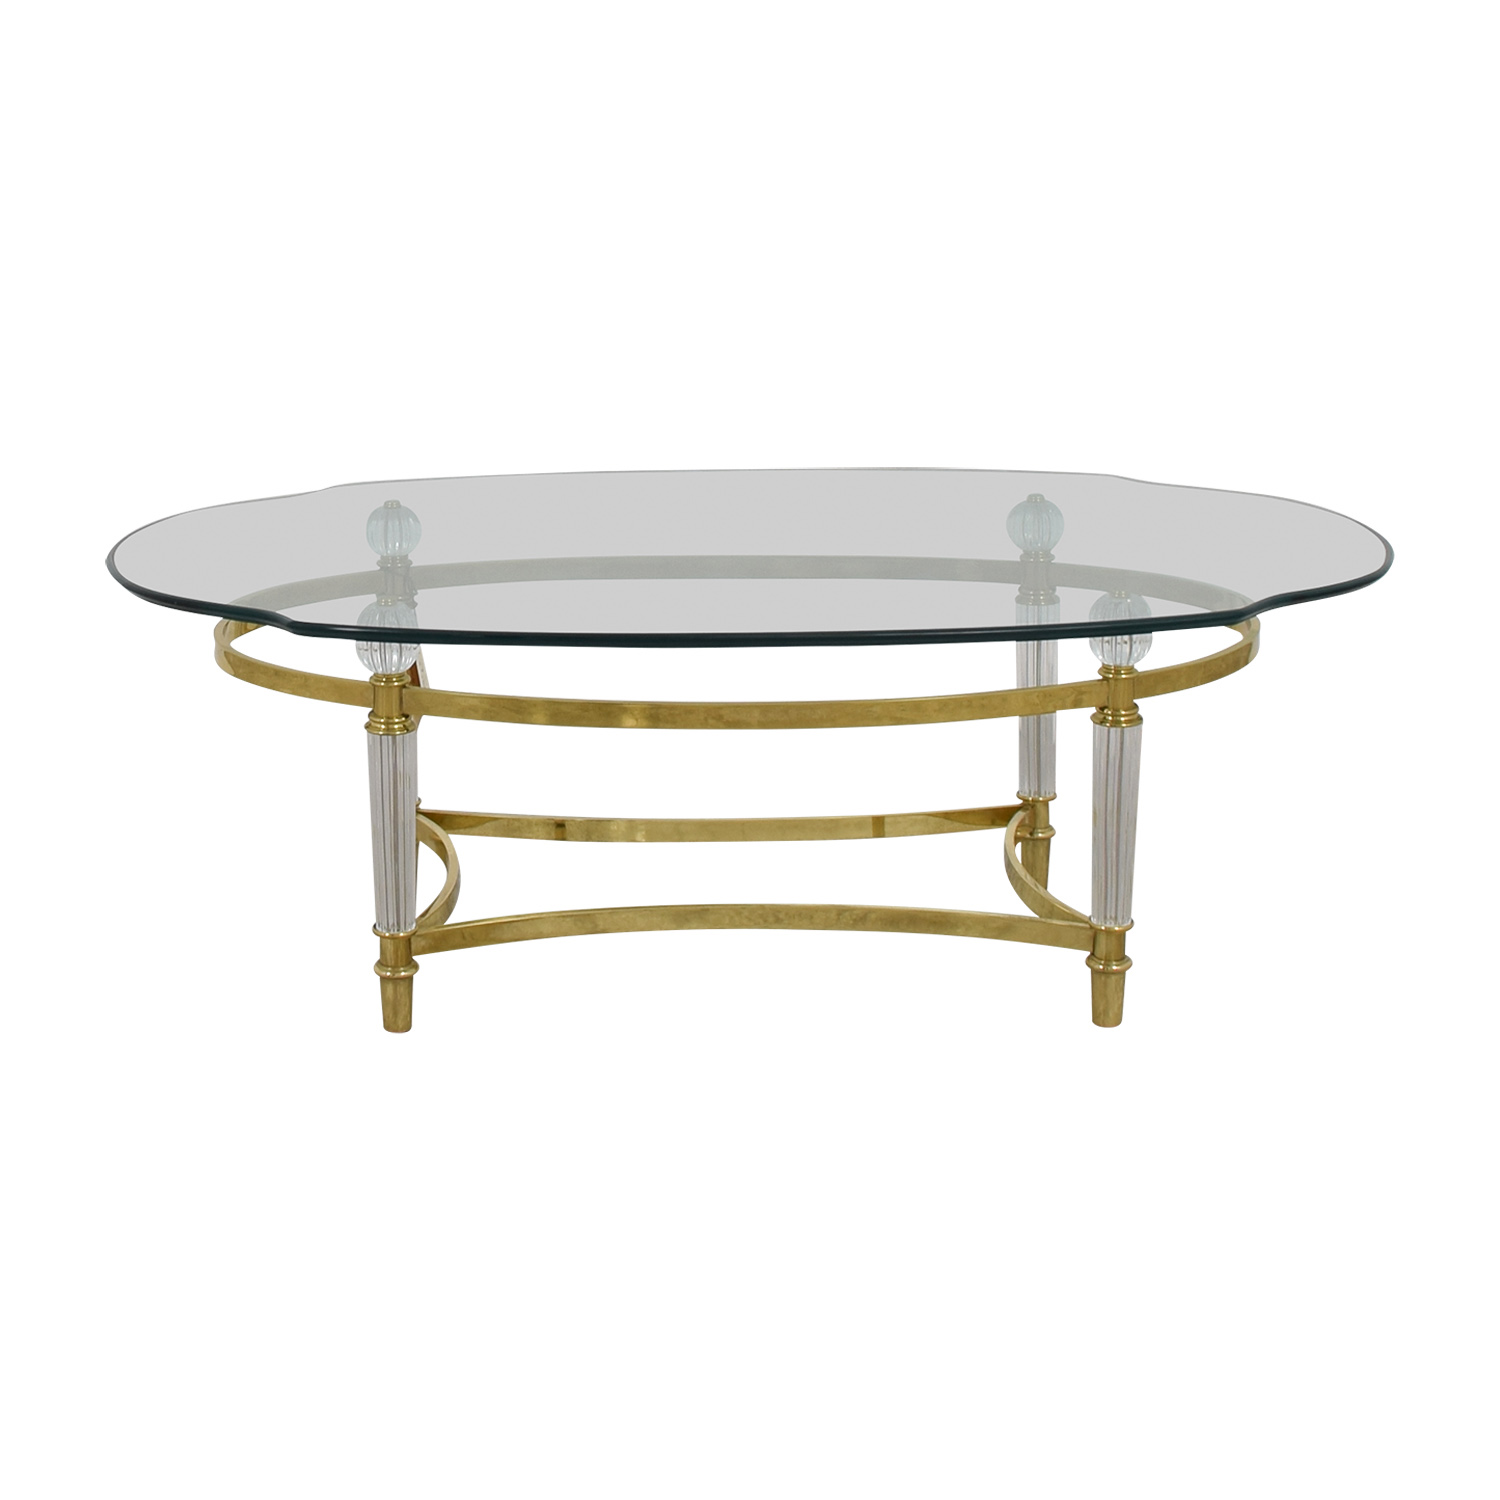 buy La Barge La Barge Brass and Italian Crystal Cocktail Table online